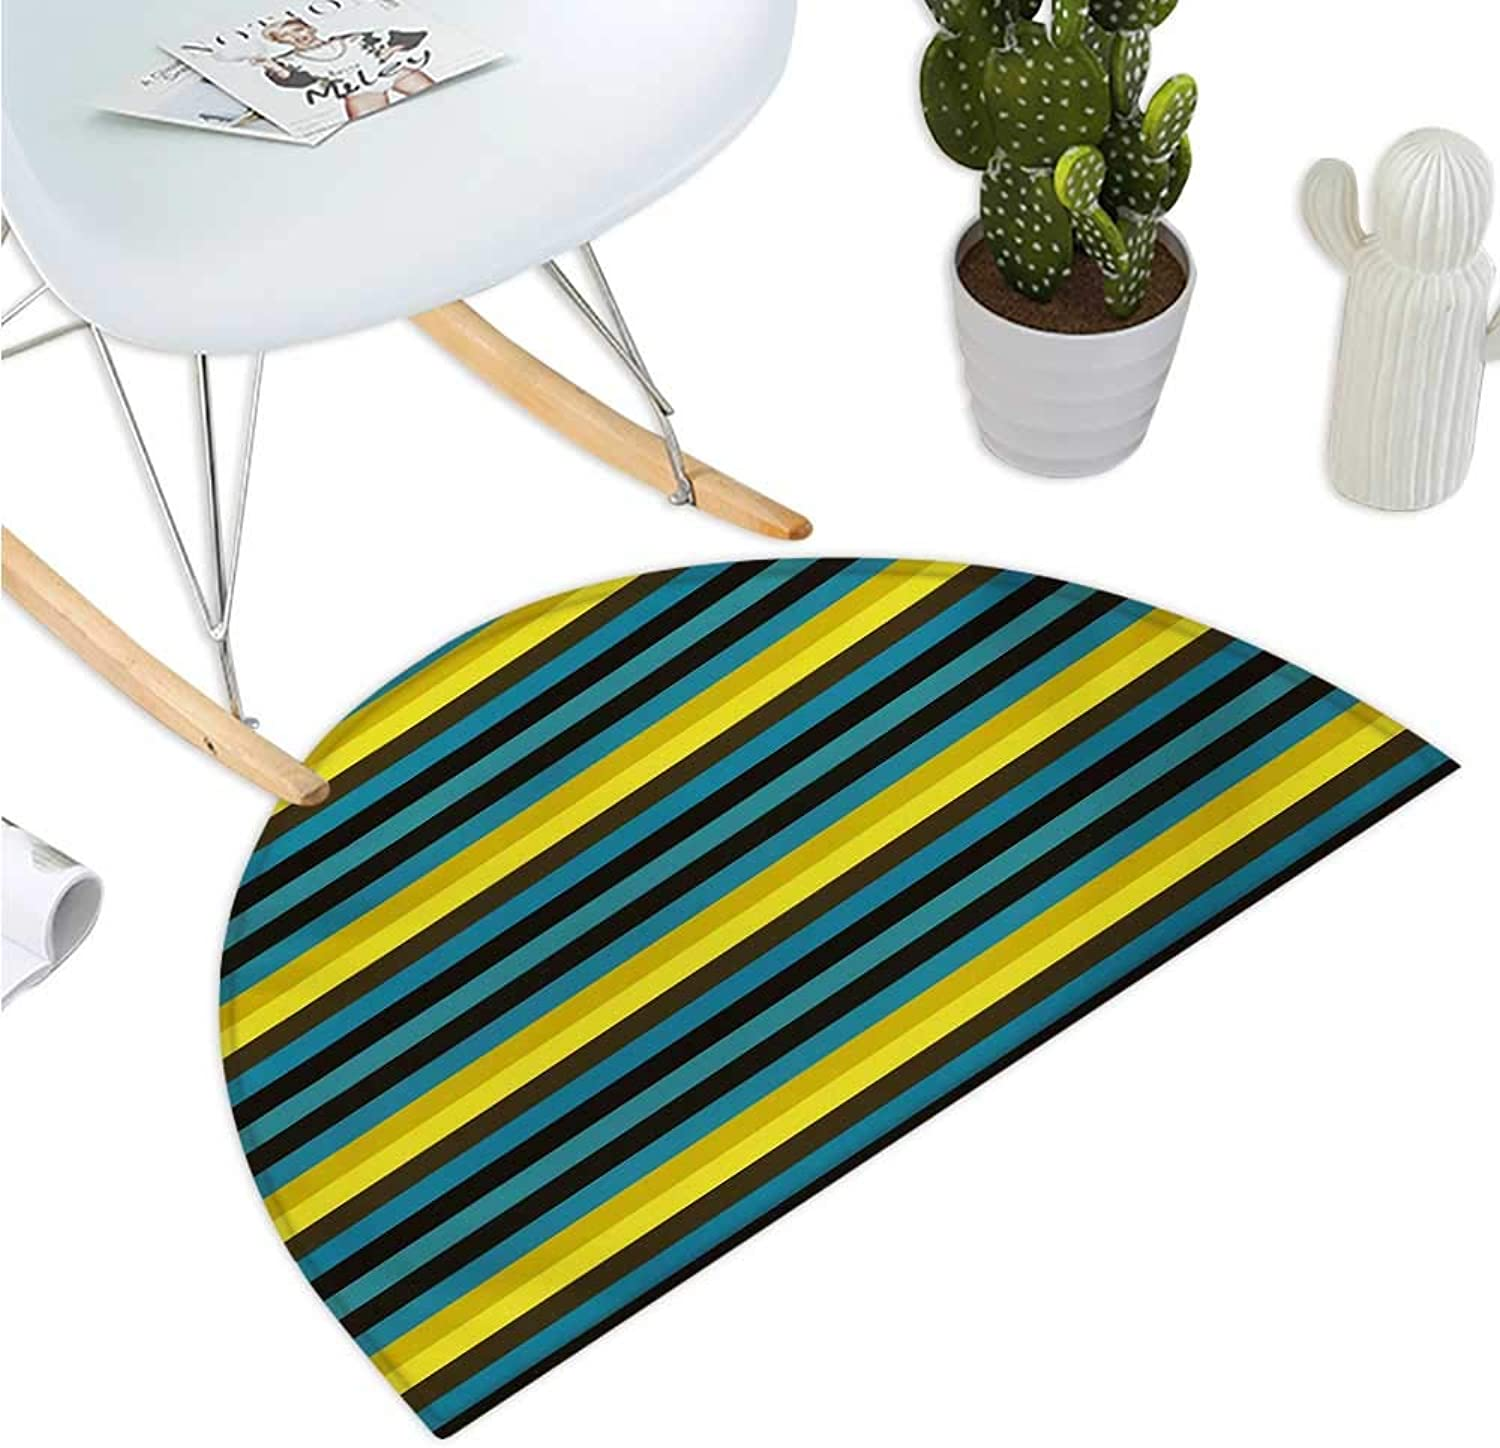 Retro Semicircular Cushion Striped Geometric Pattern with Funky colorful Lines Horizontal Illustration Print Entry Door Mat H 51.1  xD 76.7  Multicolor